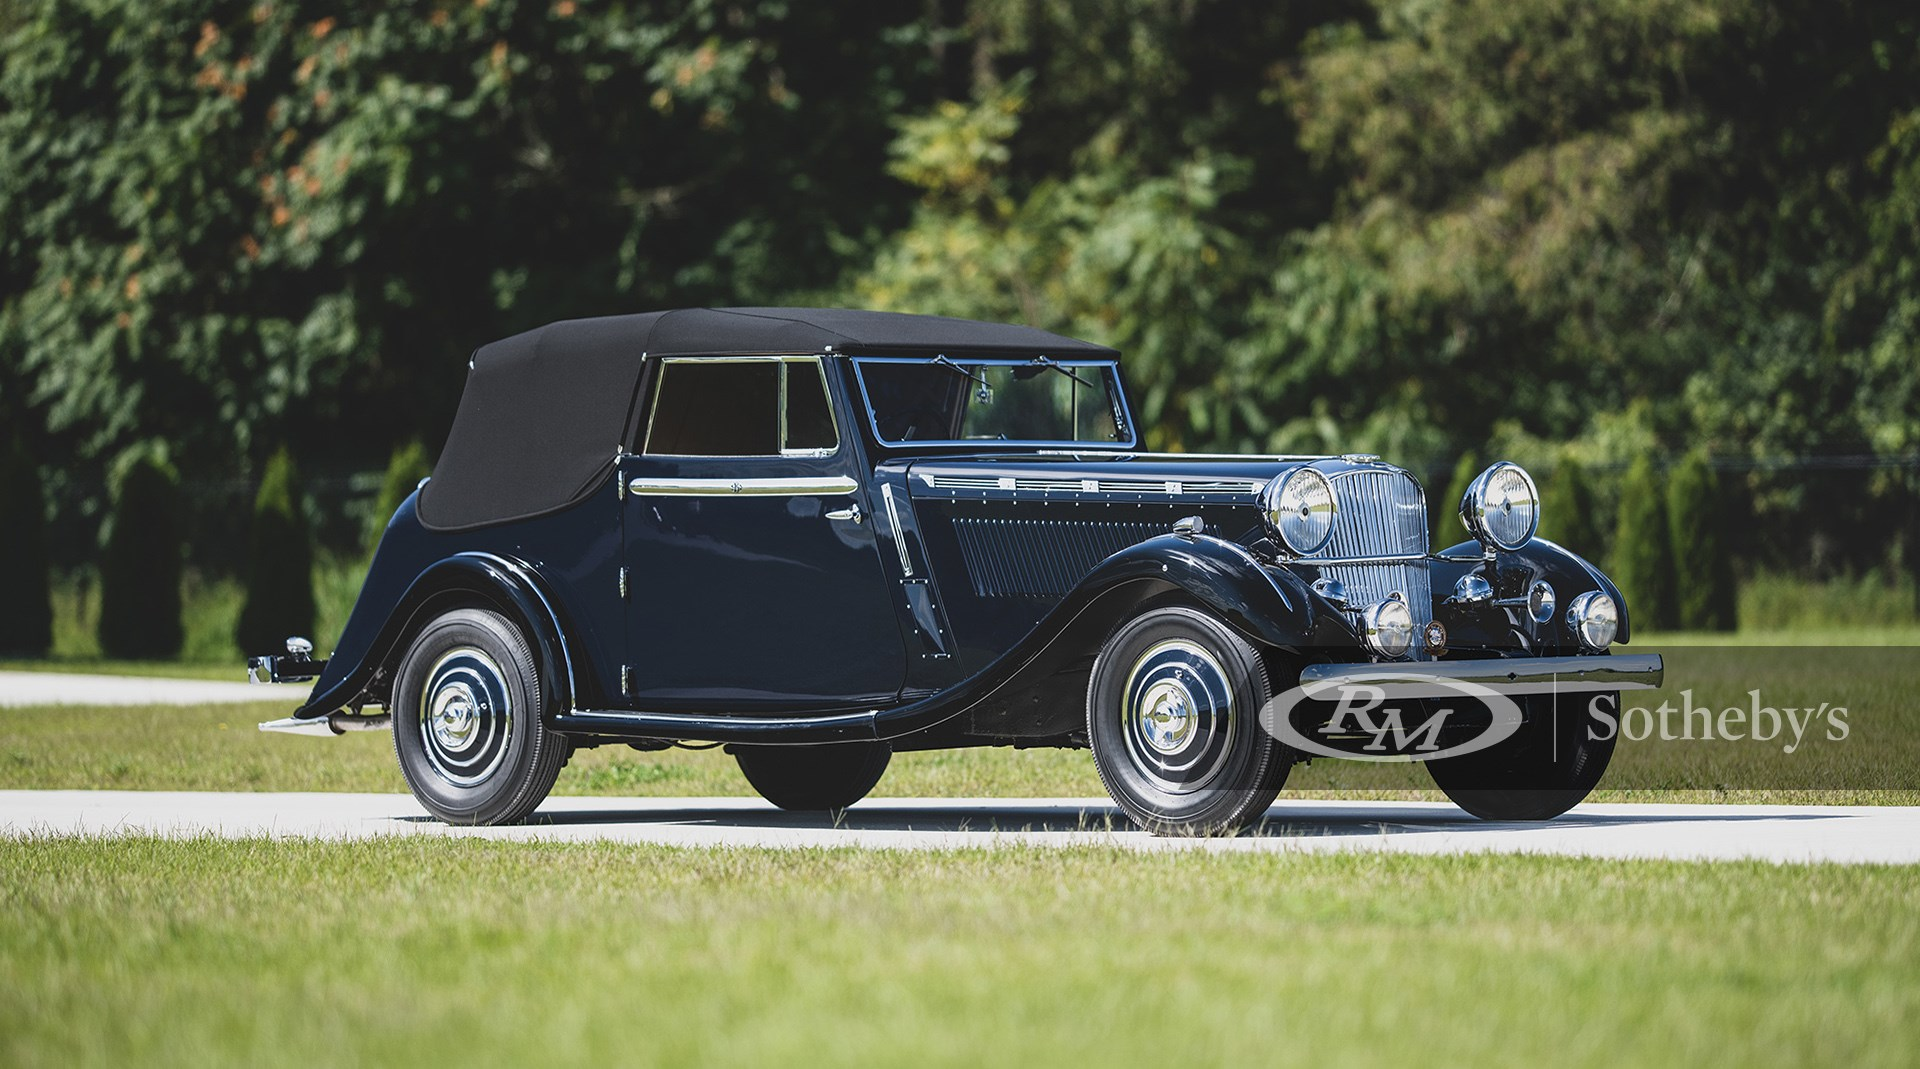 RM Sotheby's The Elkhart Collection 2020, 1937 Brough Superior 3 1/2 -Litre 'Dual Purpose' Drophead Coupe by Atcherley